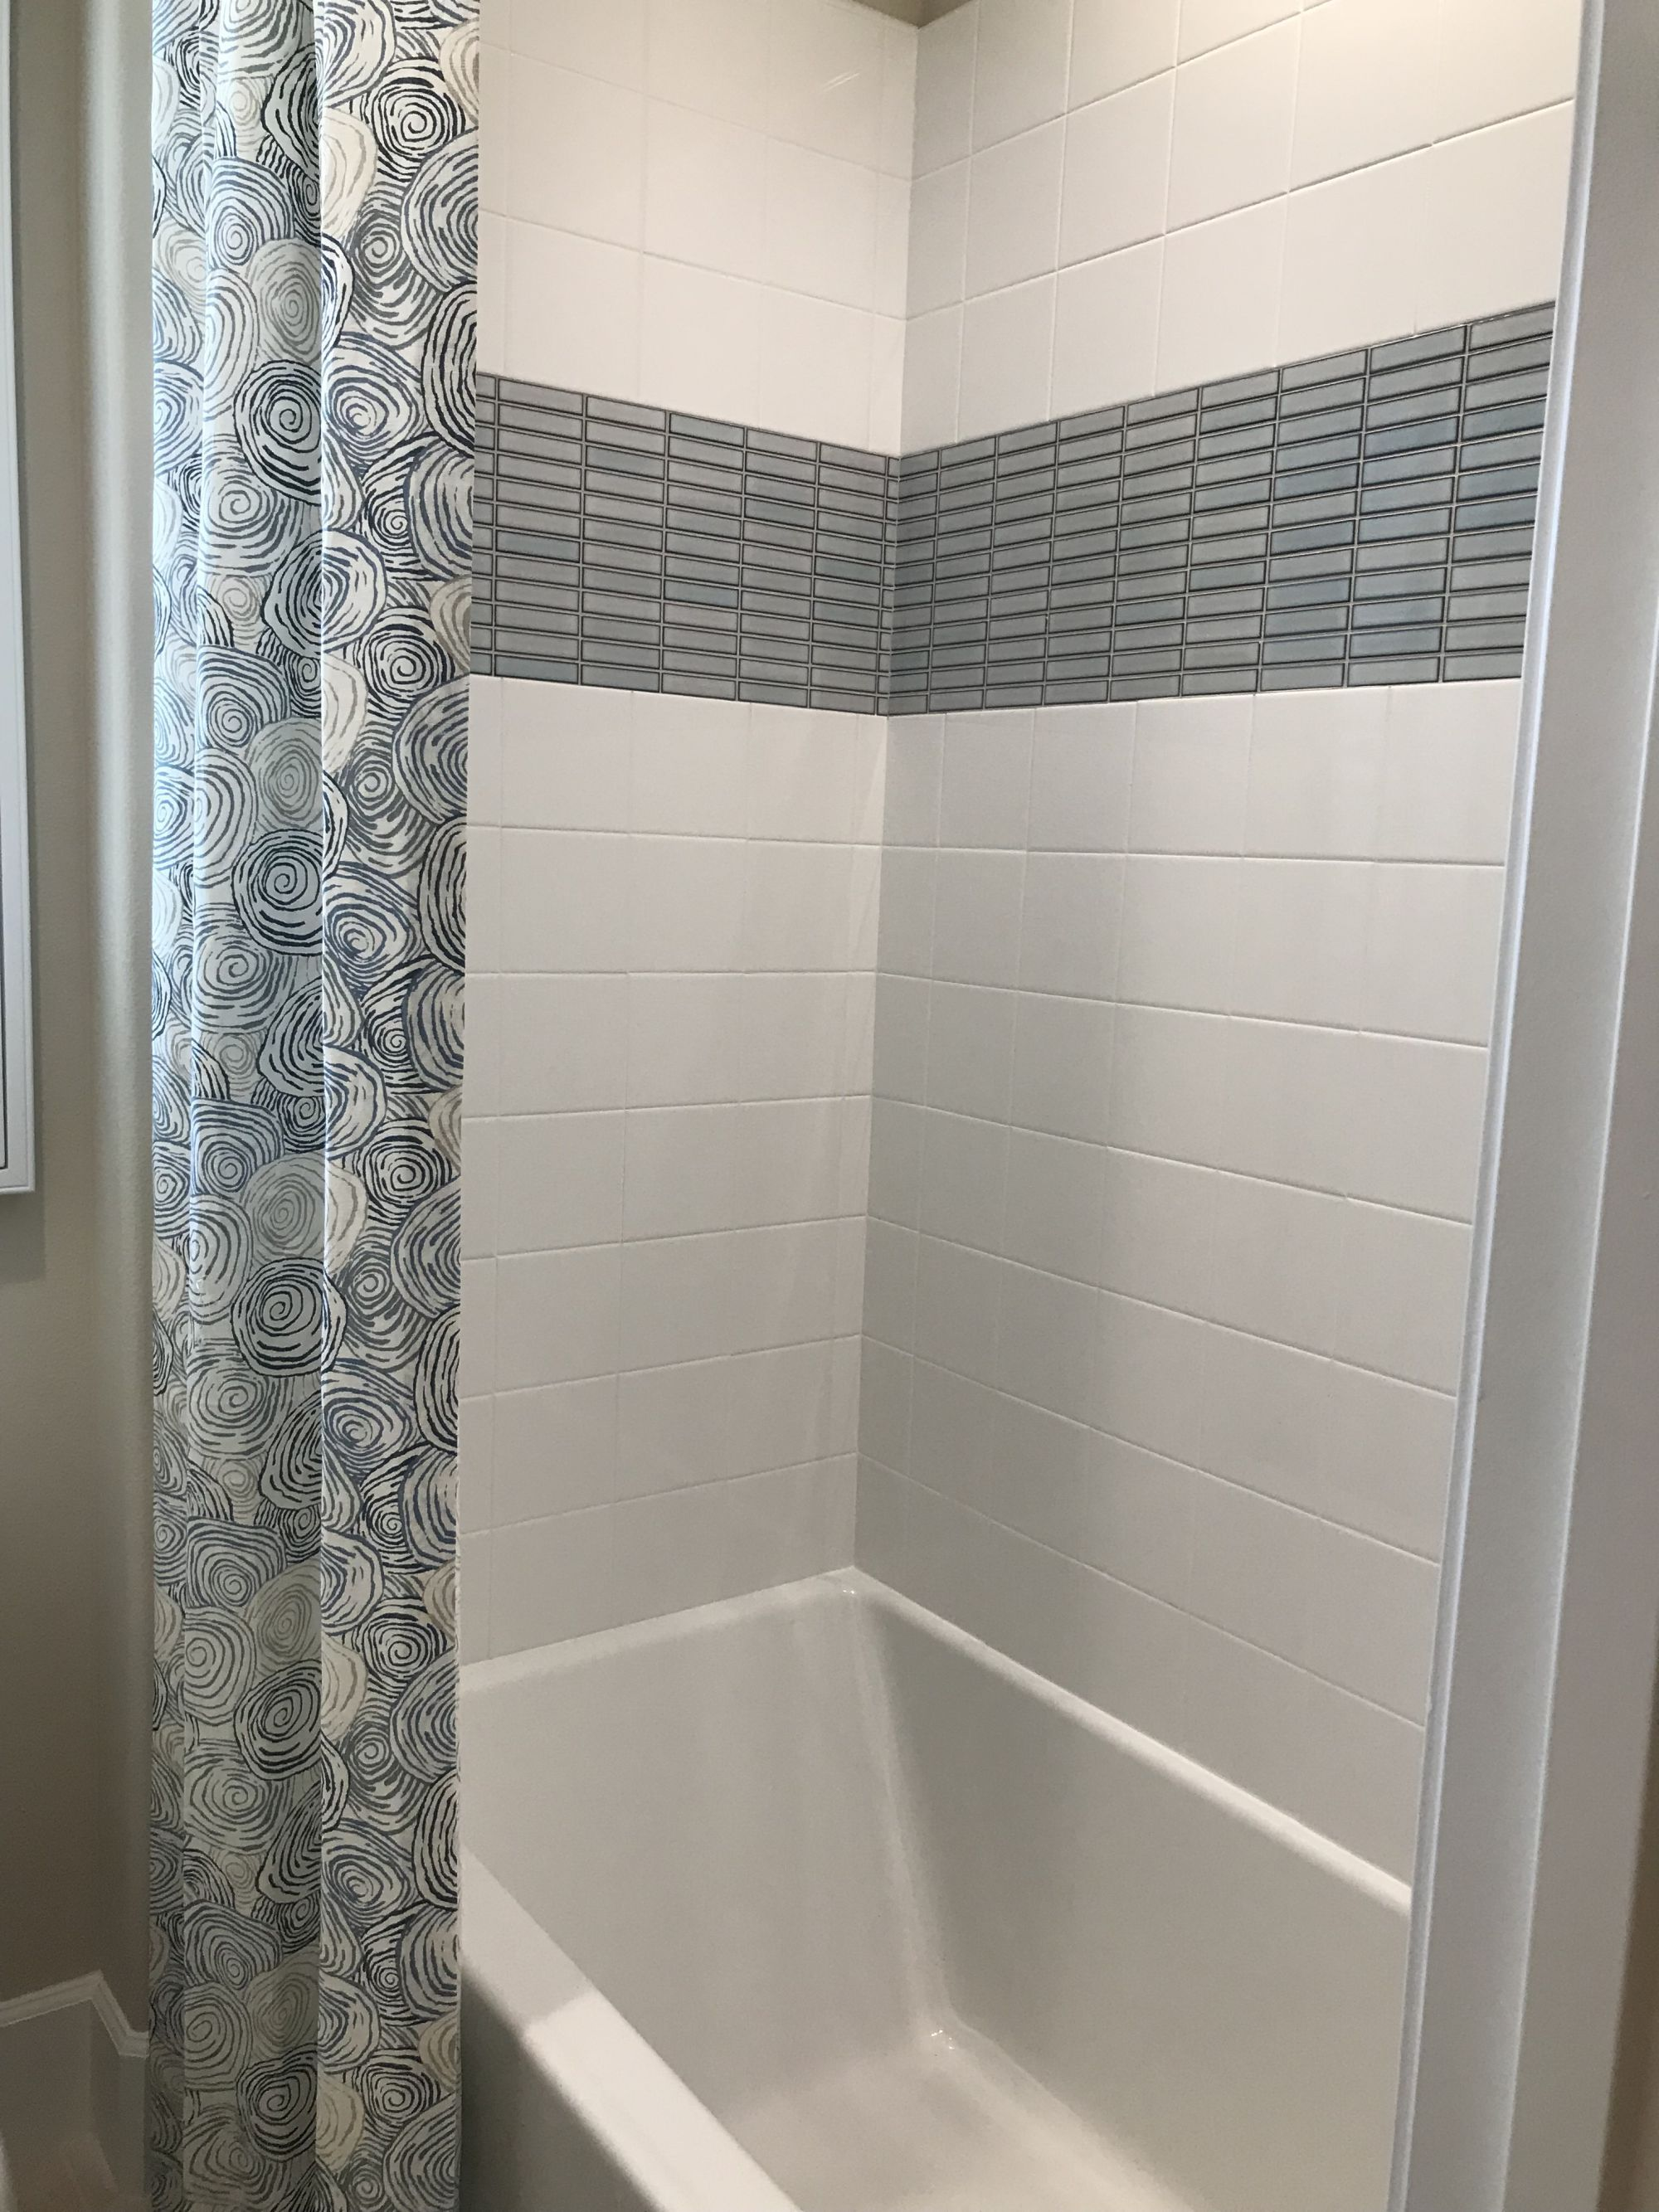 Bathroom Remodel Ideas Shower Stall White Blue Stile Pretty Shower Curtain Bathrooms Remodel Shower Stall Diy Bathroom Remodel